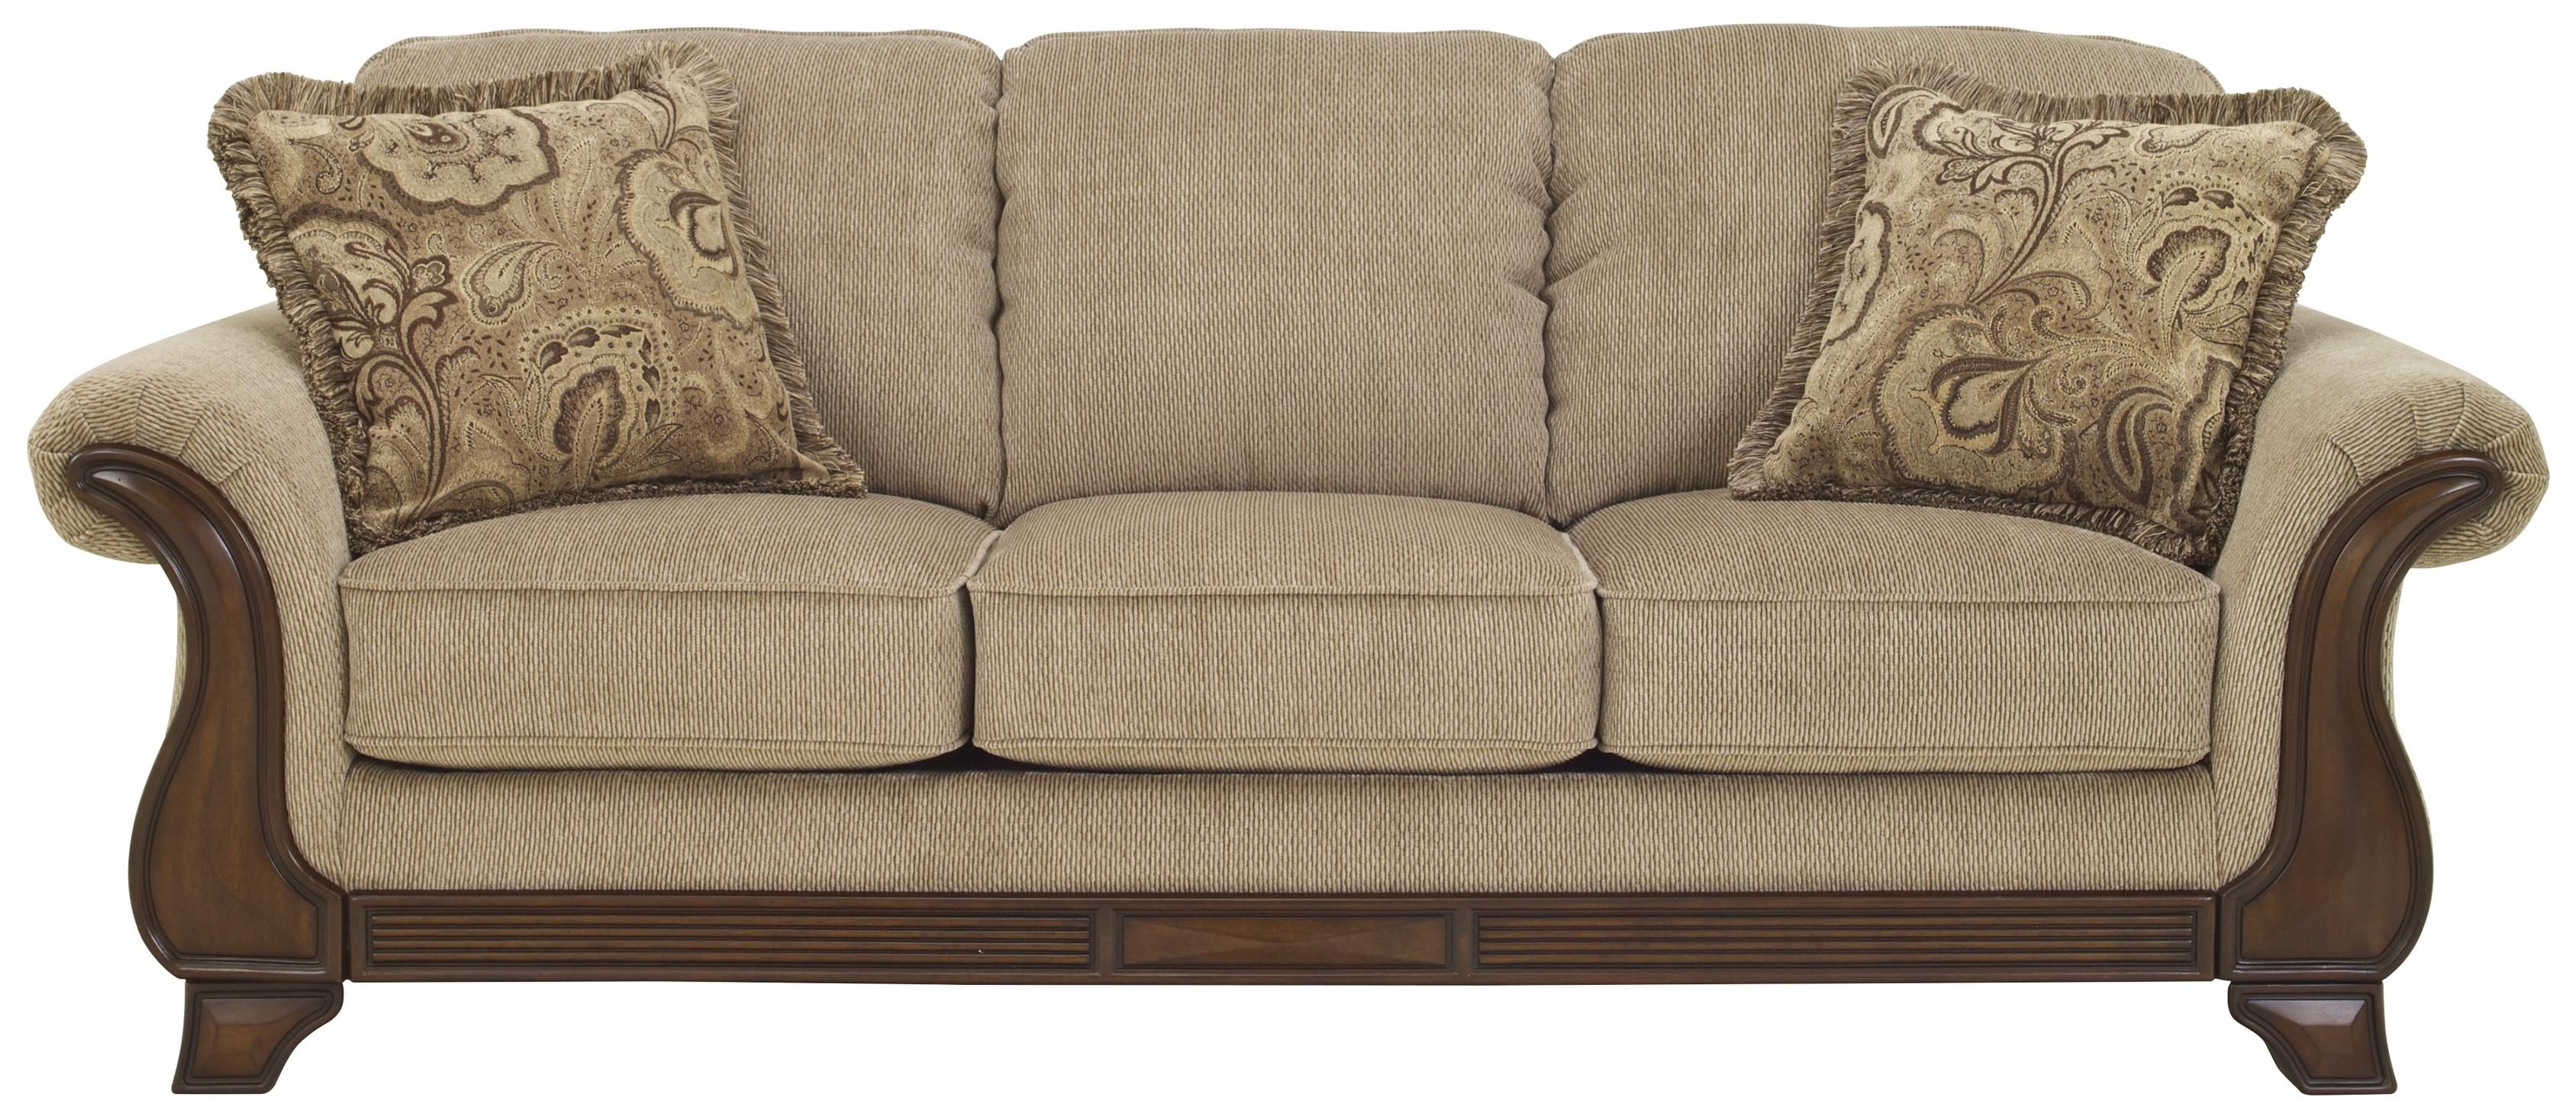 Ashley Signature Design Sofa Signature Design By Ashley Lanett Sofa With Flared Arms